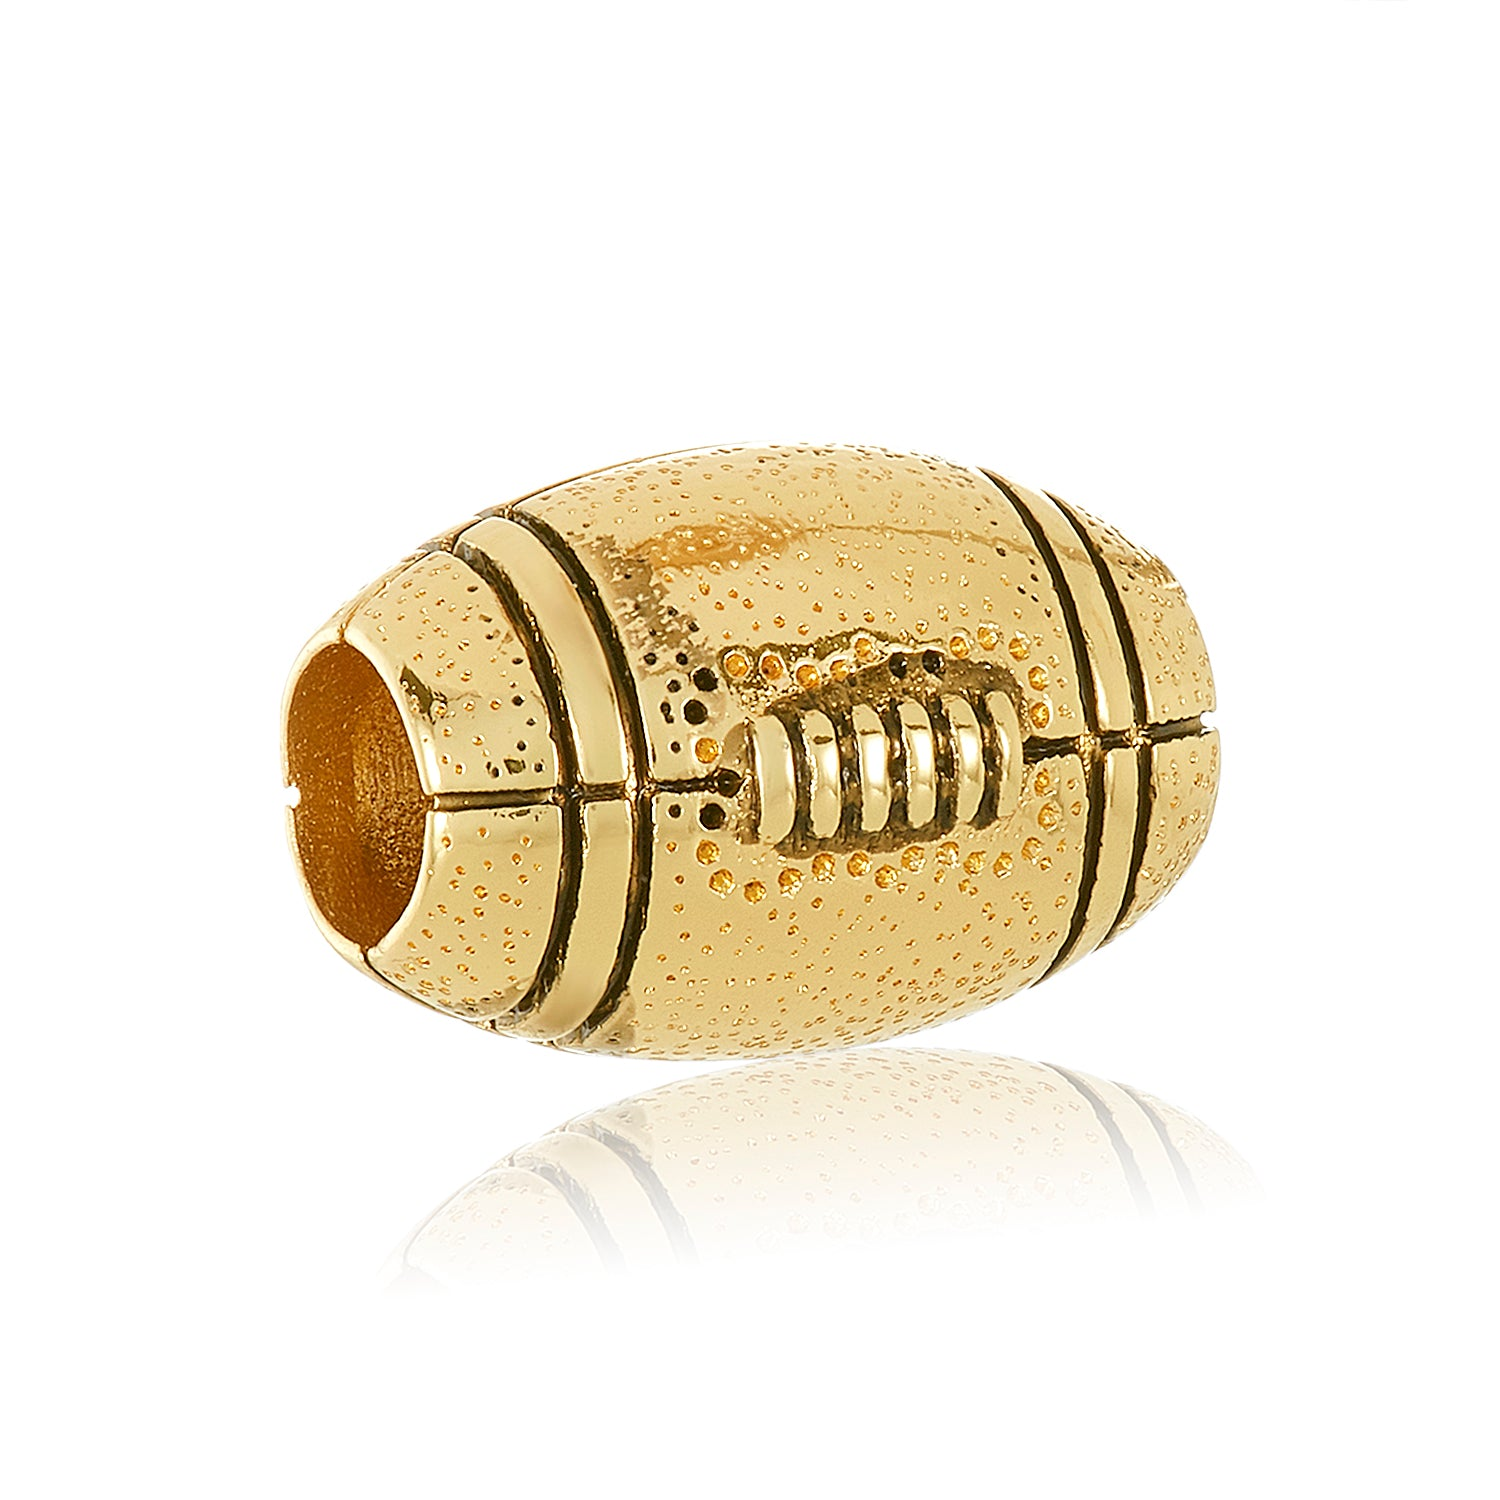 Gold football bead for use with DBW interchangeable bracelets.